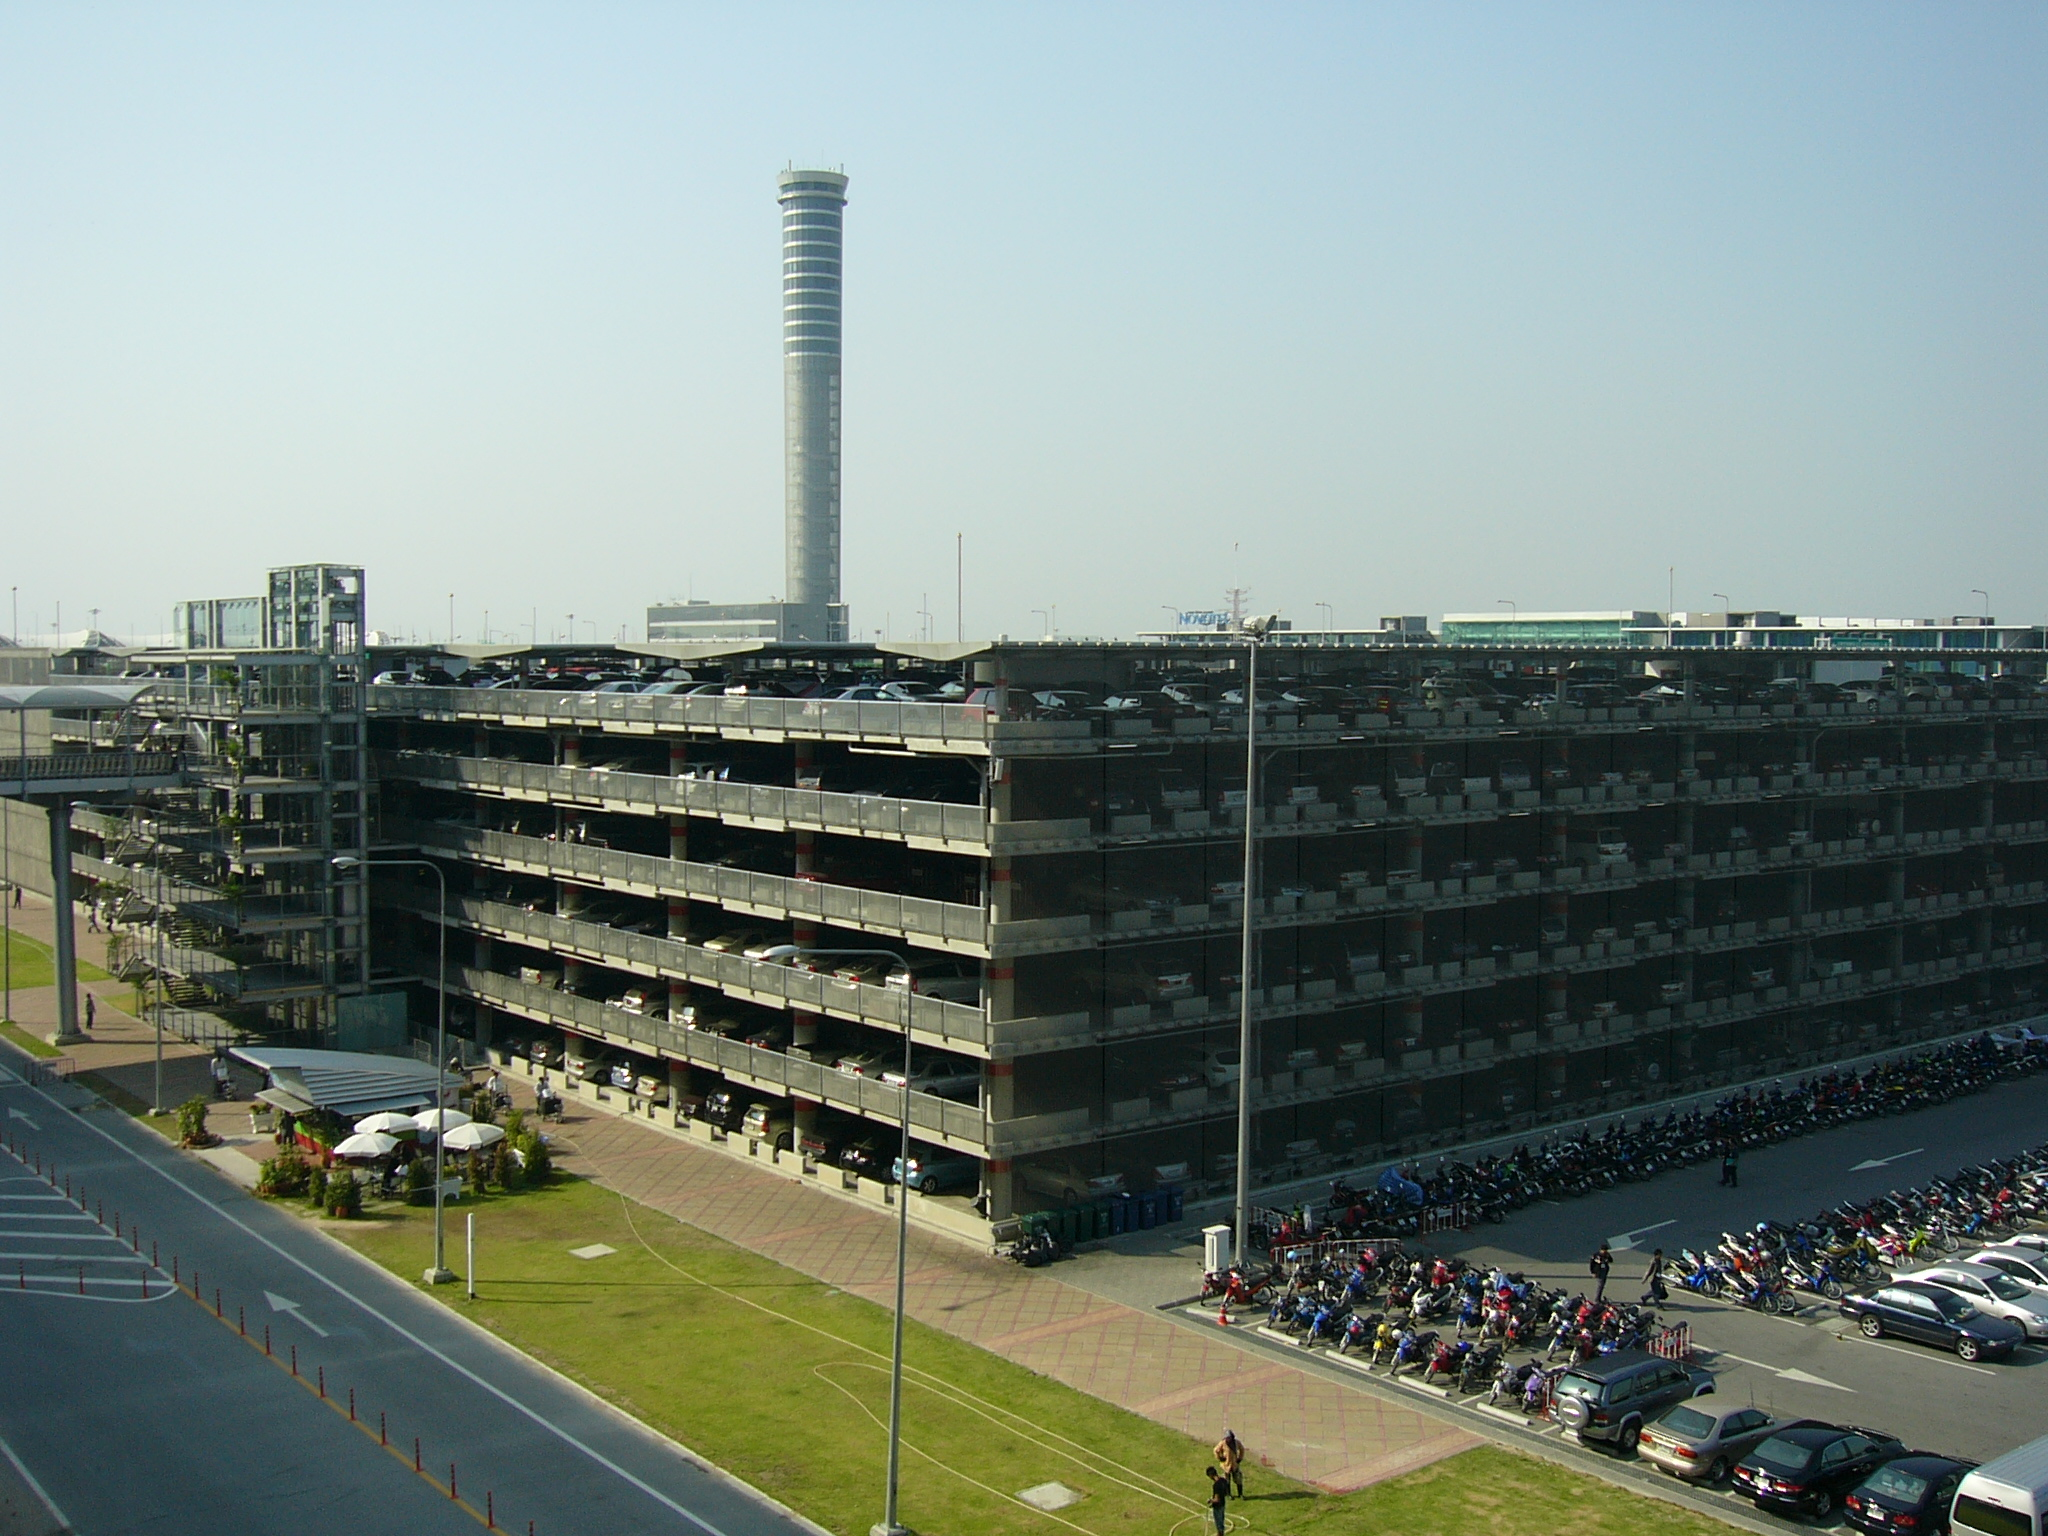 File:VTBS-Main Parking building.JPG - Wikimedia Commons